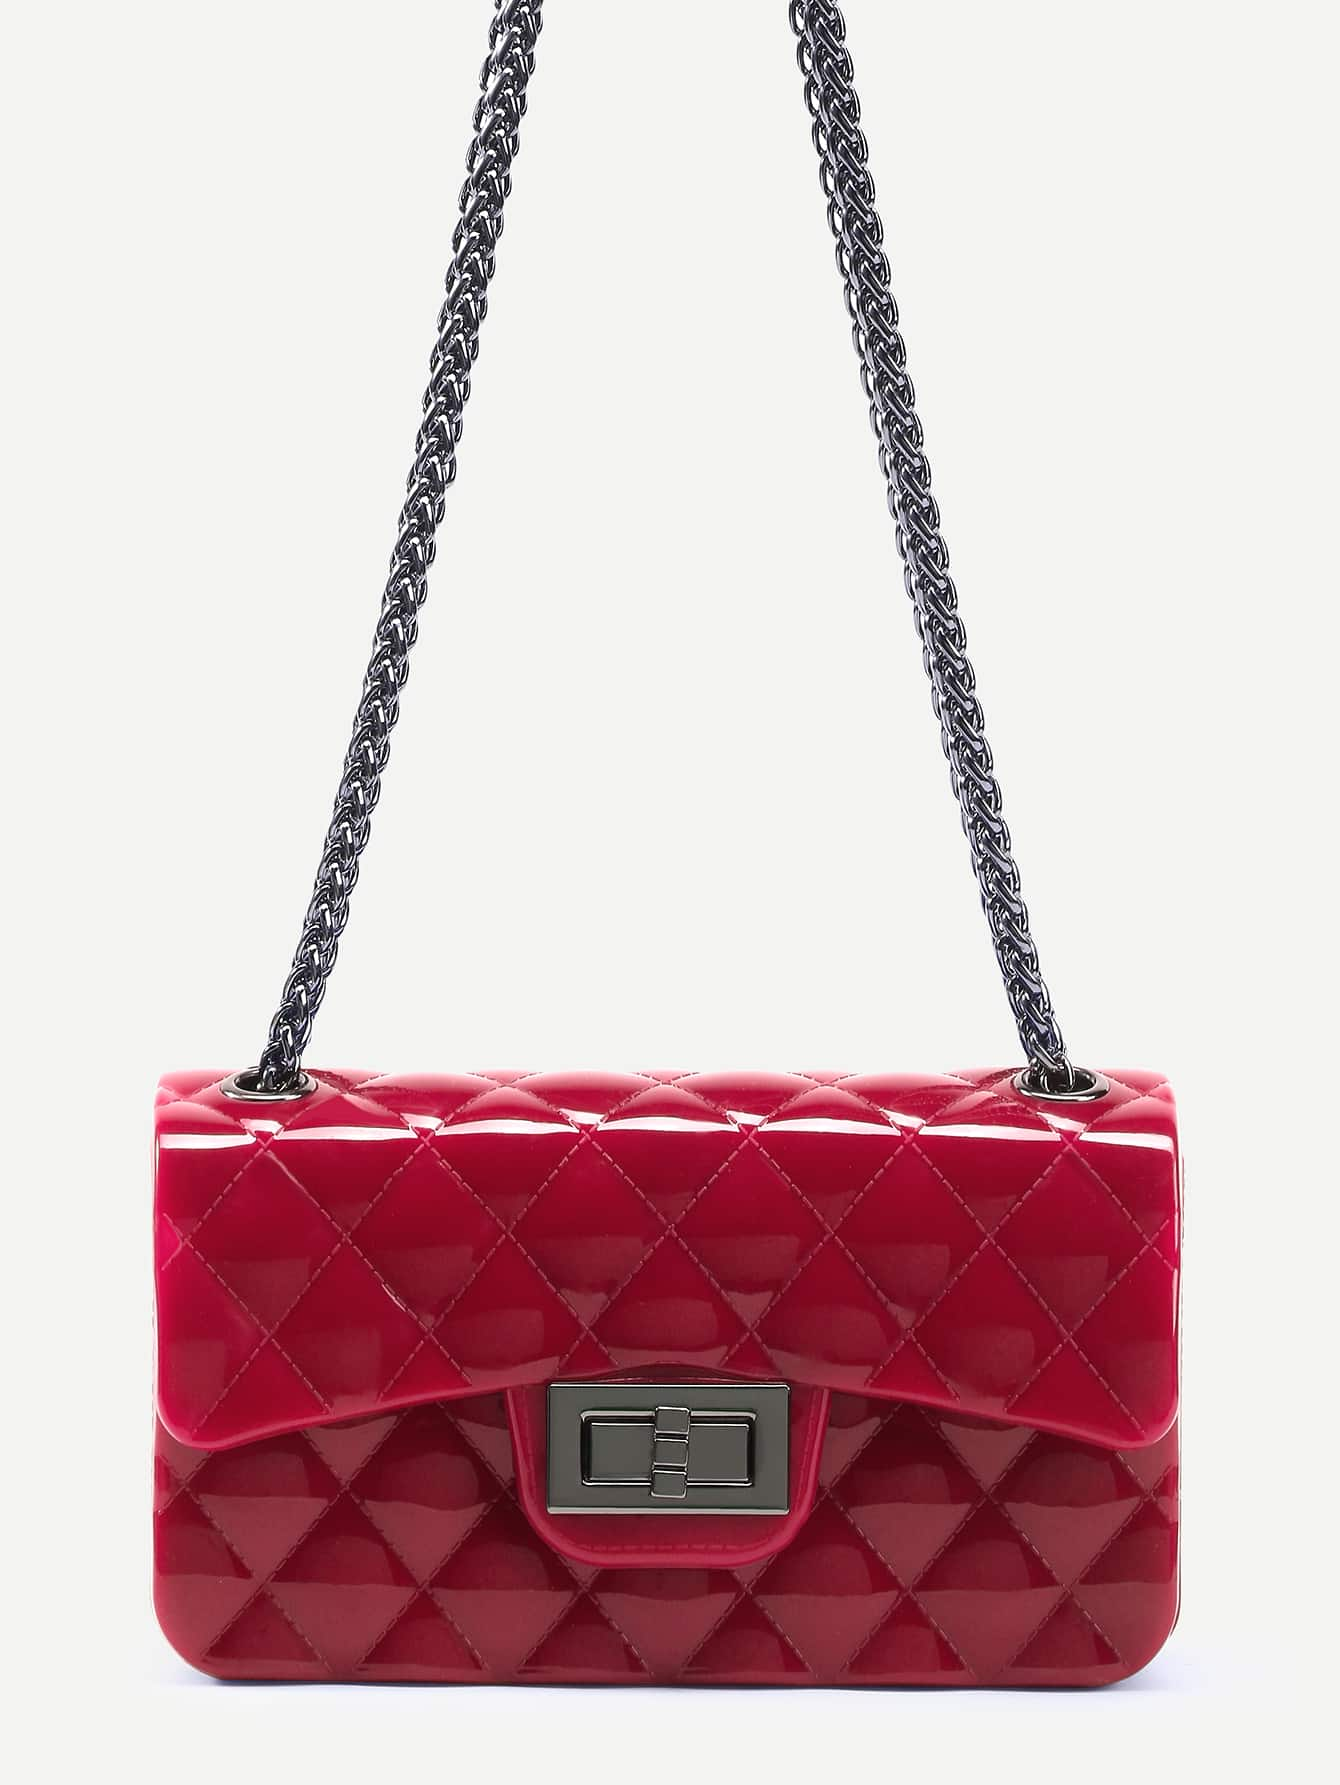 Red Plastic Quilted Flap Bag With Chain Image